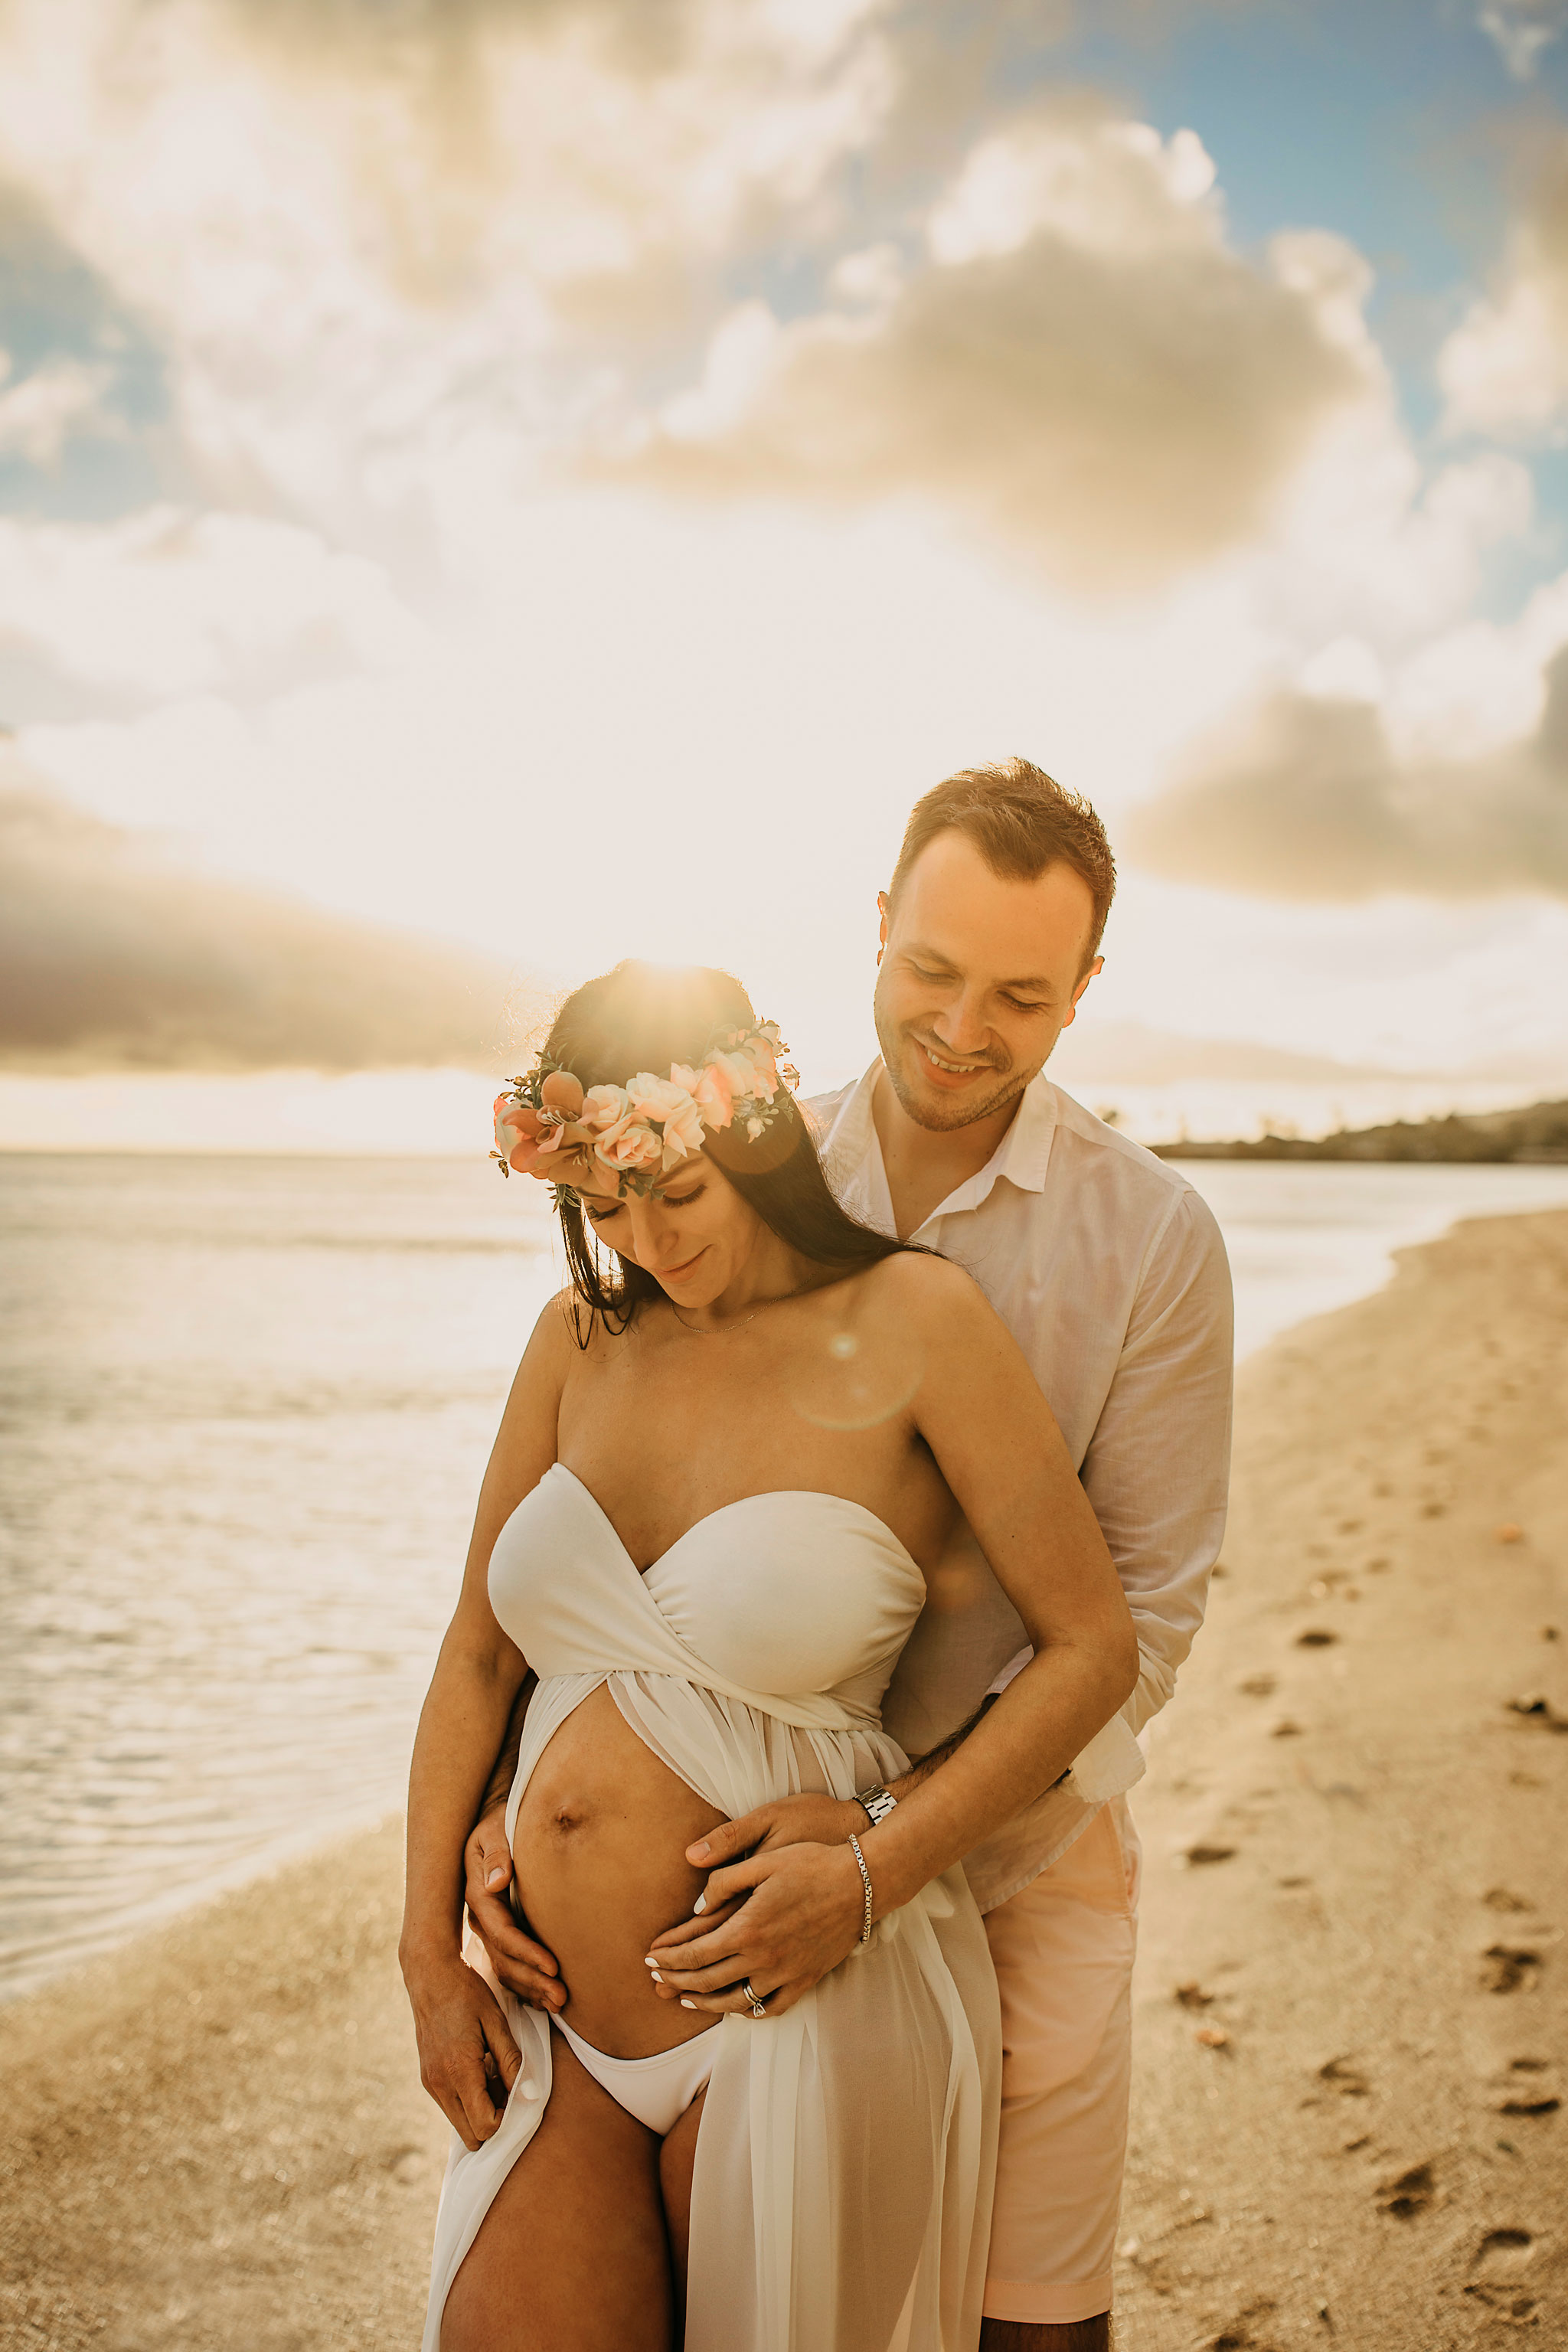 Hawaii-Maternity-Photographer26.jpg